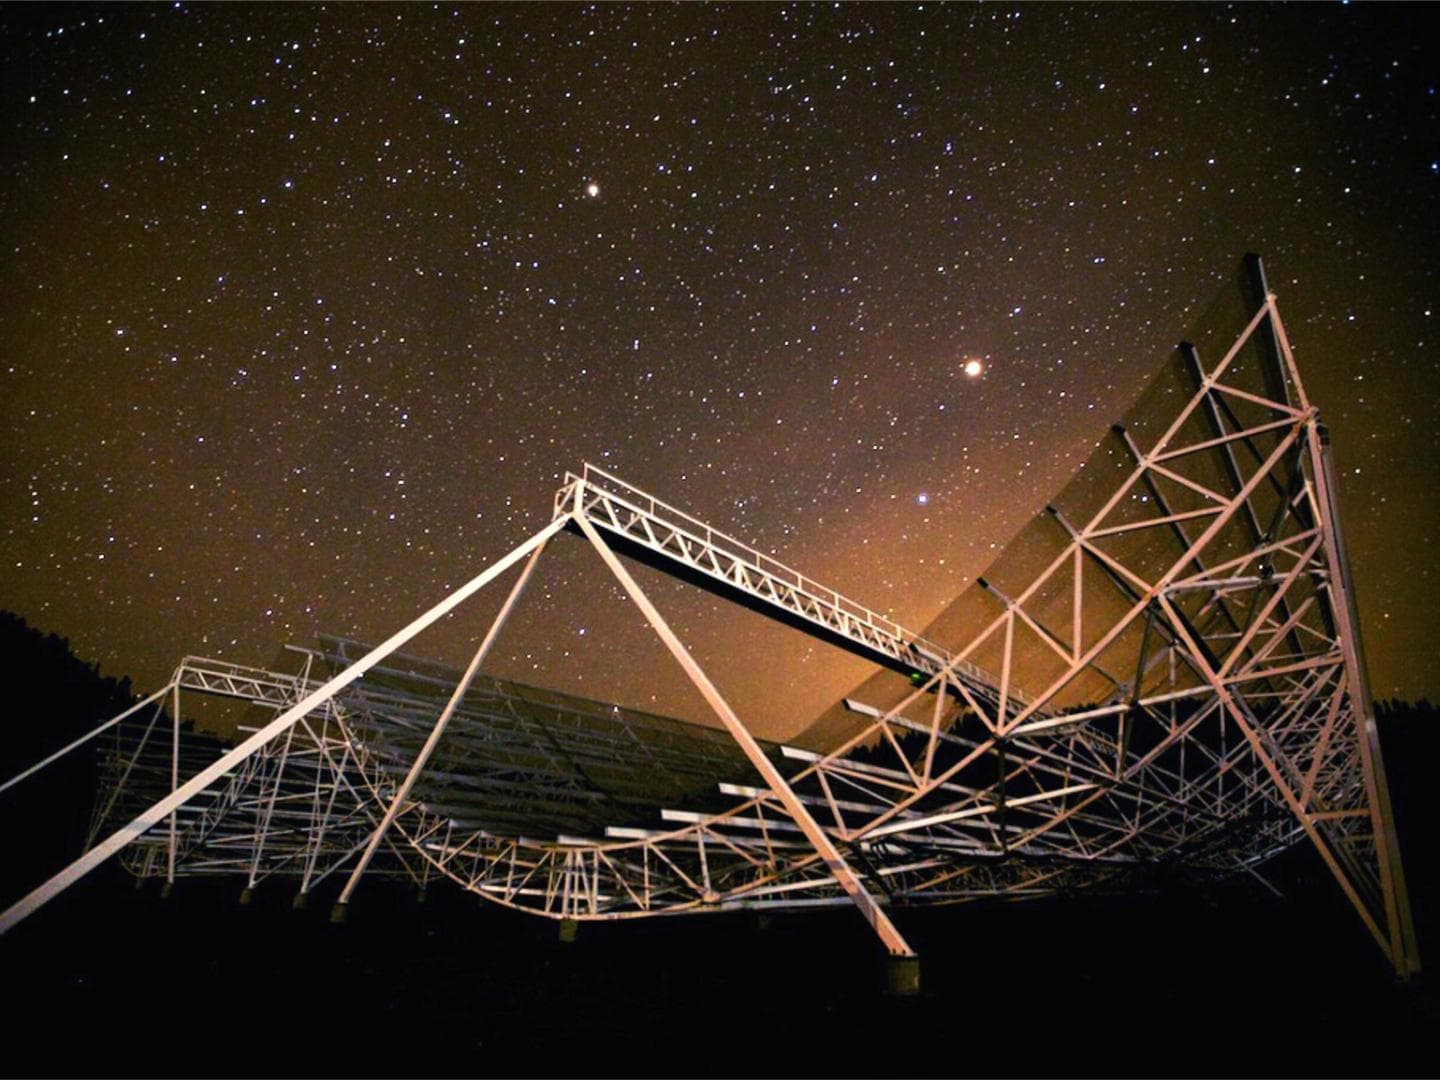 <p>Kevin Bandura, assistant professor of computer science and electrical engineering, will use the Canadian Hydrogen Intensity Mapping Experiment (CHIME) to study the expansion of the universe. (Photo courtesy CHIME/Andre Recnik)</p>